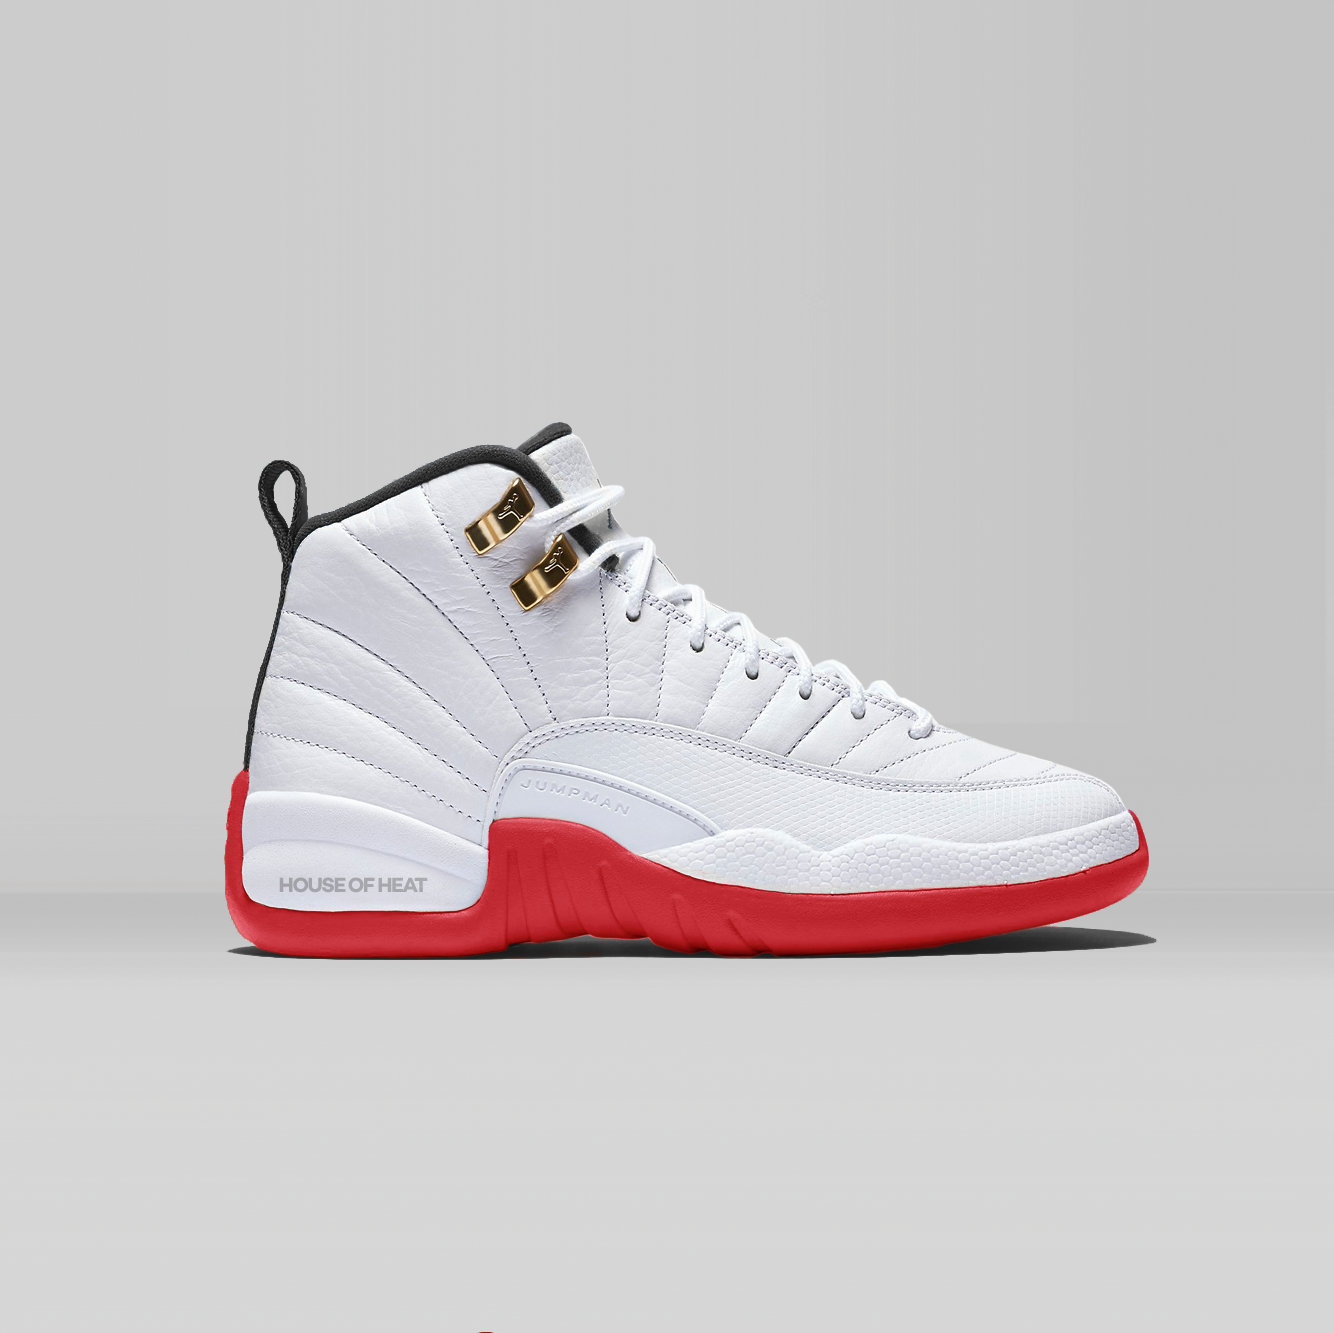 Концепт Лаборатории House of Heat: Air Jordan 12 «Инфракрасный»